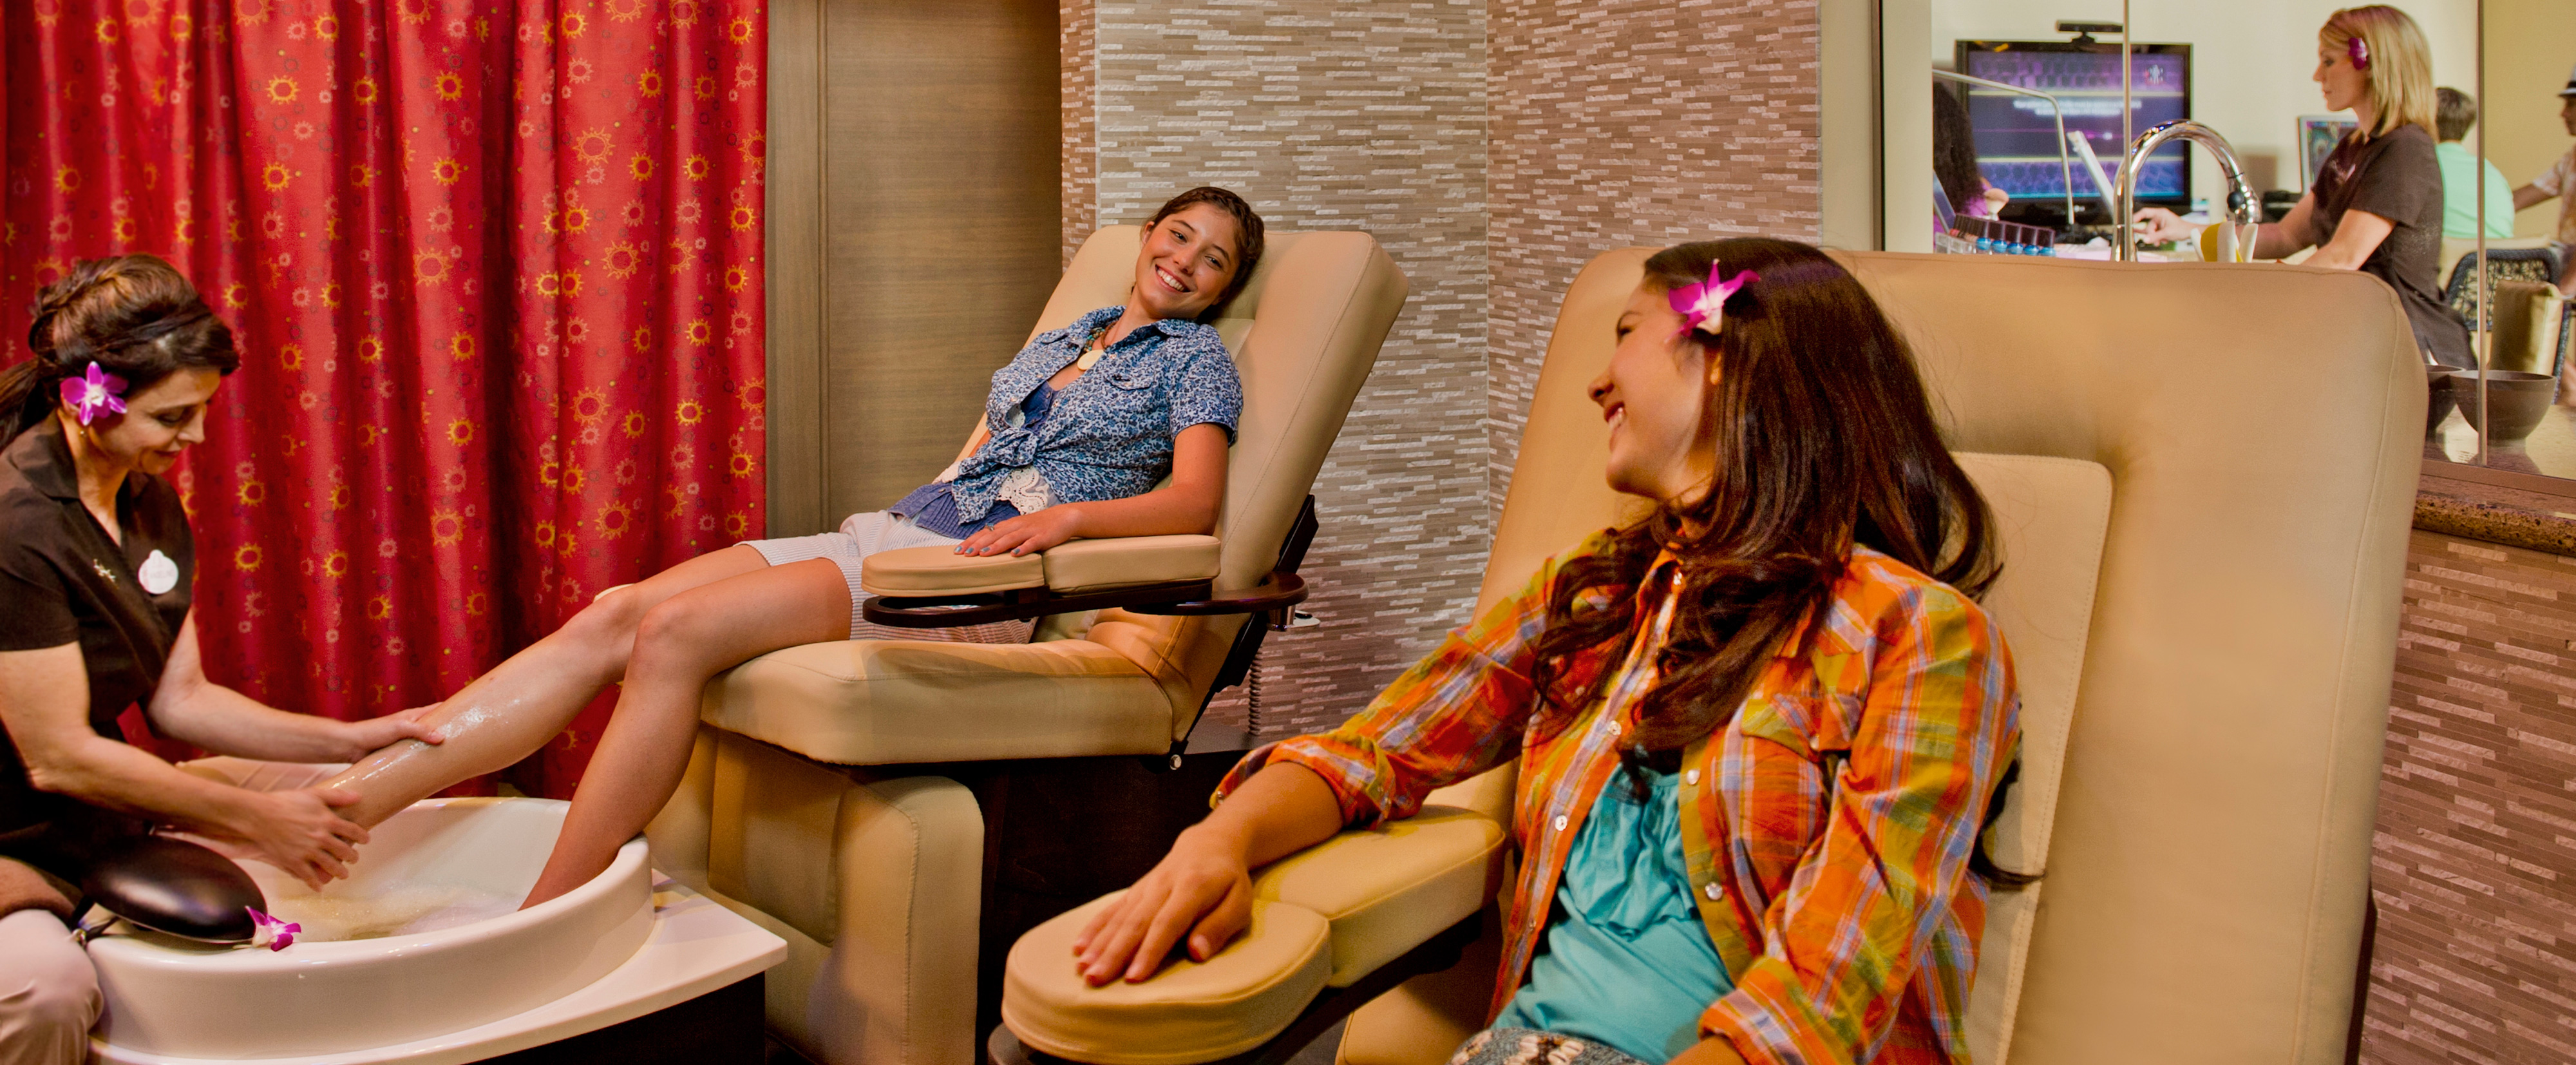 Pedicures: Teens relax over pampering treatments at Painted Sky spa.